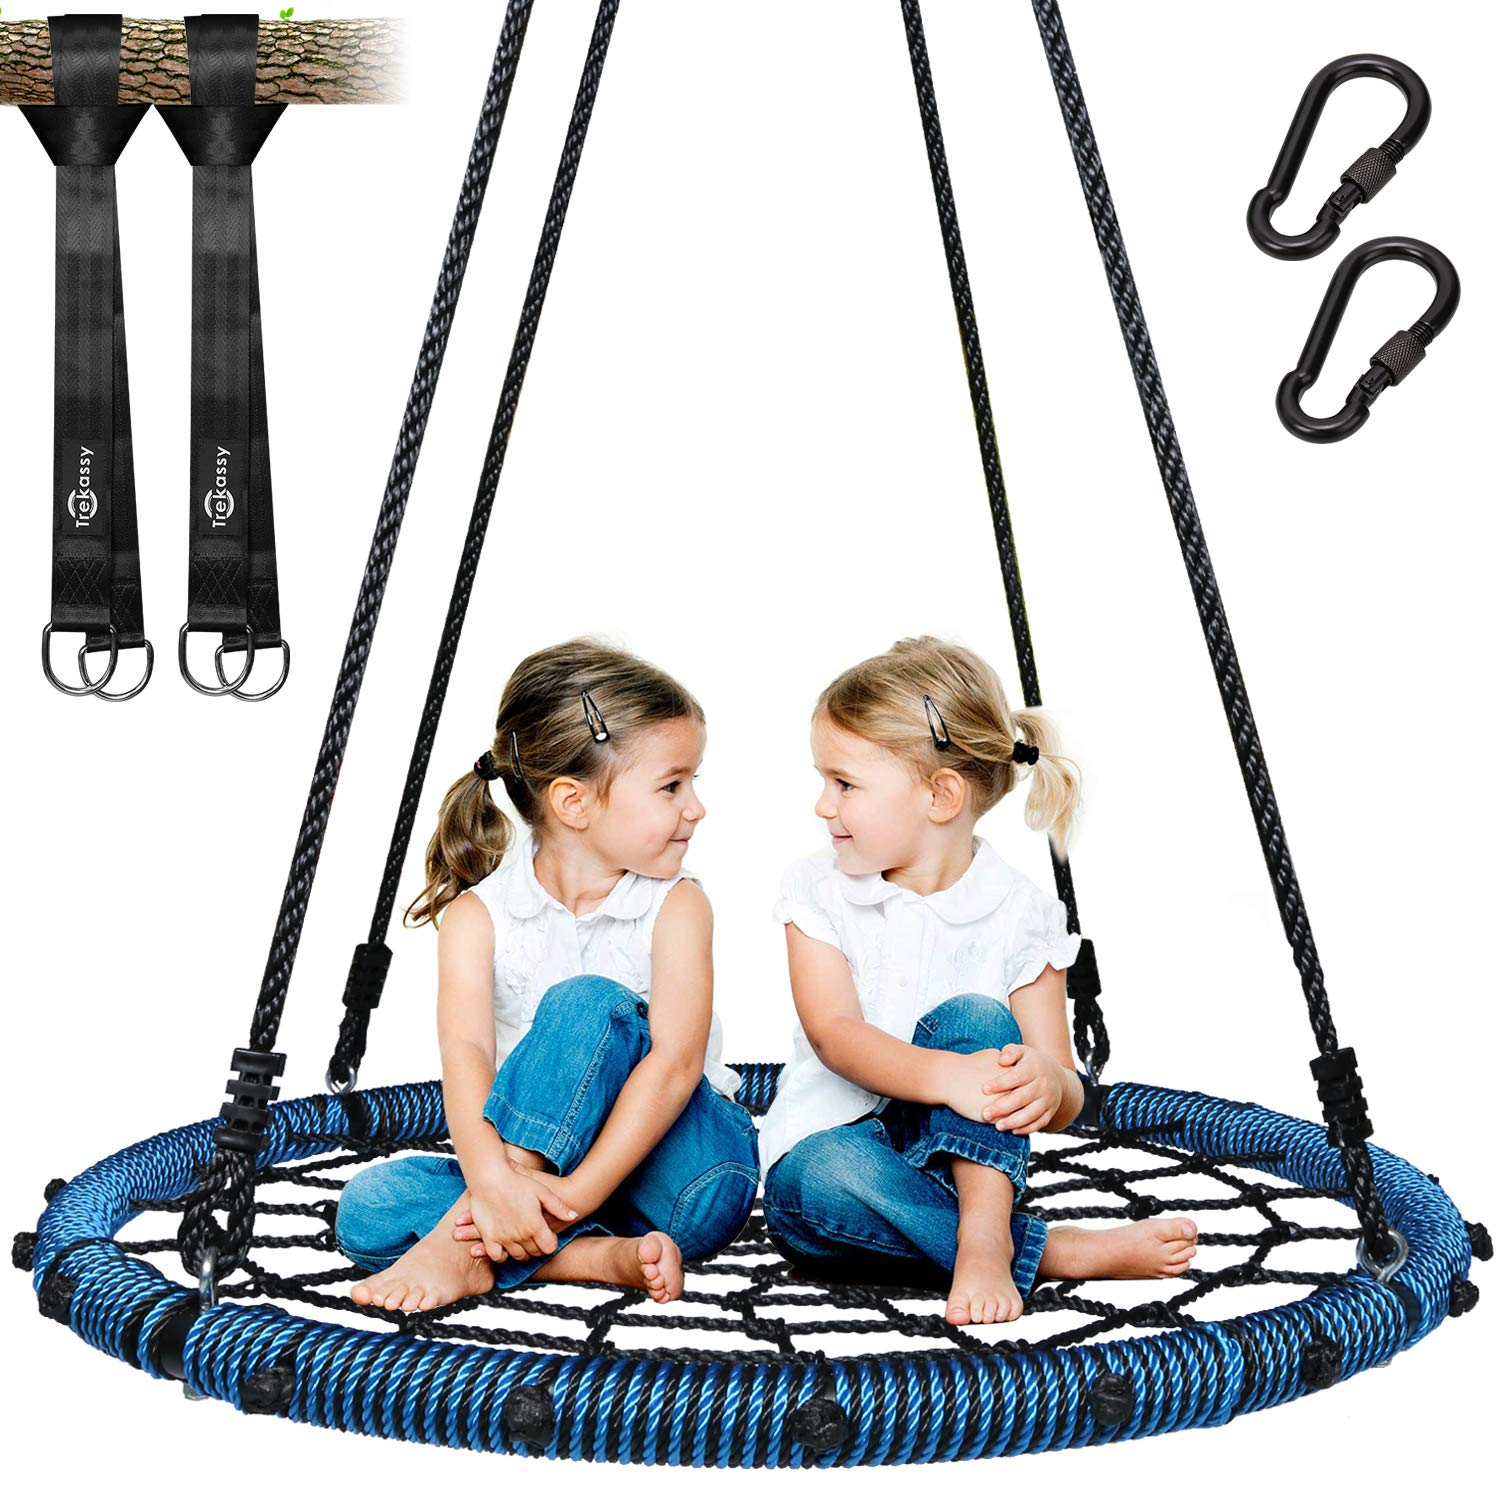 Trekassy 660 lb Spider Web Swing 40 inch for Tree Kids with Steel Frame and 2 Hanging Straps by Trekassy